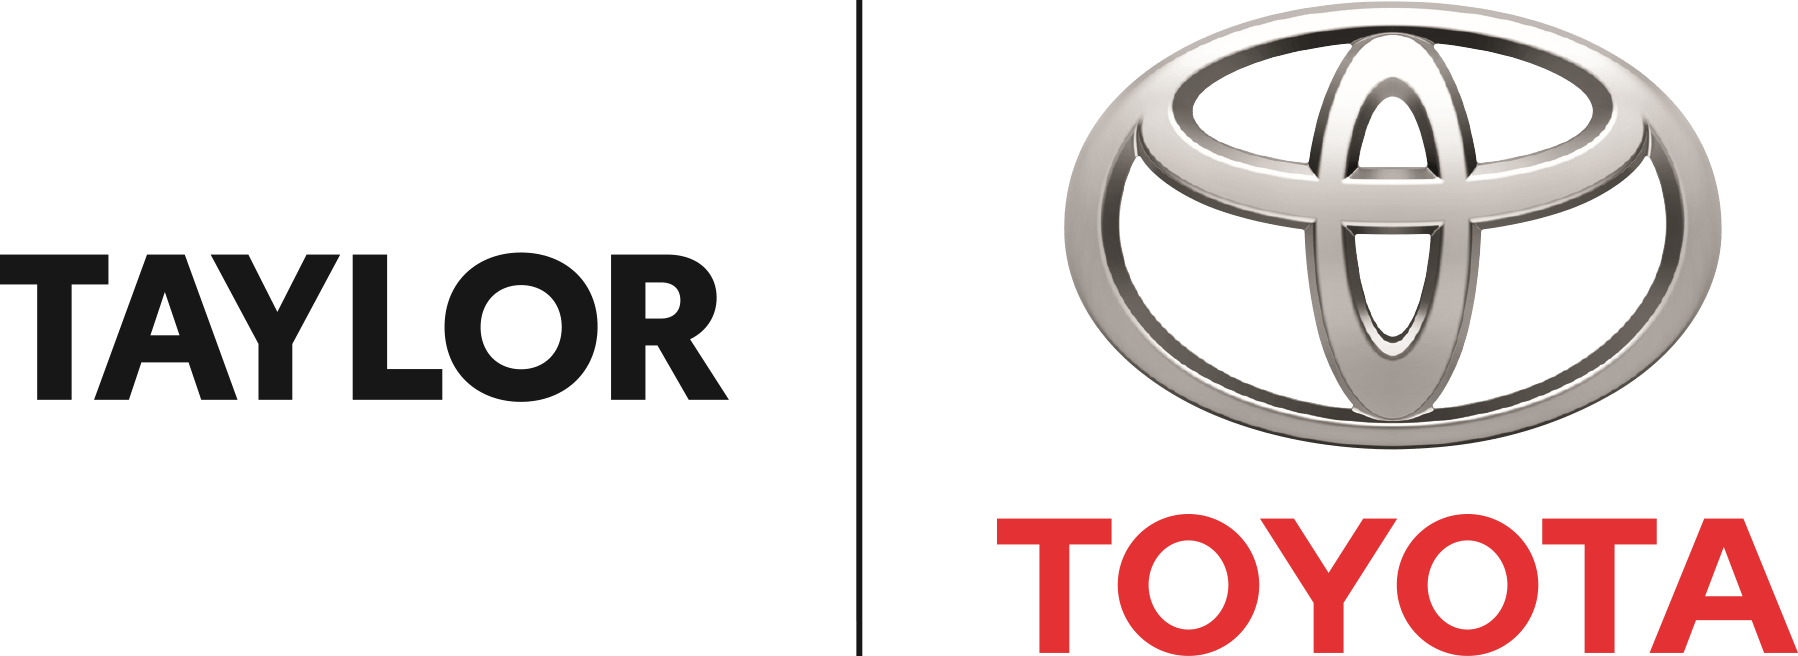 Taylor Toyota